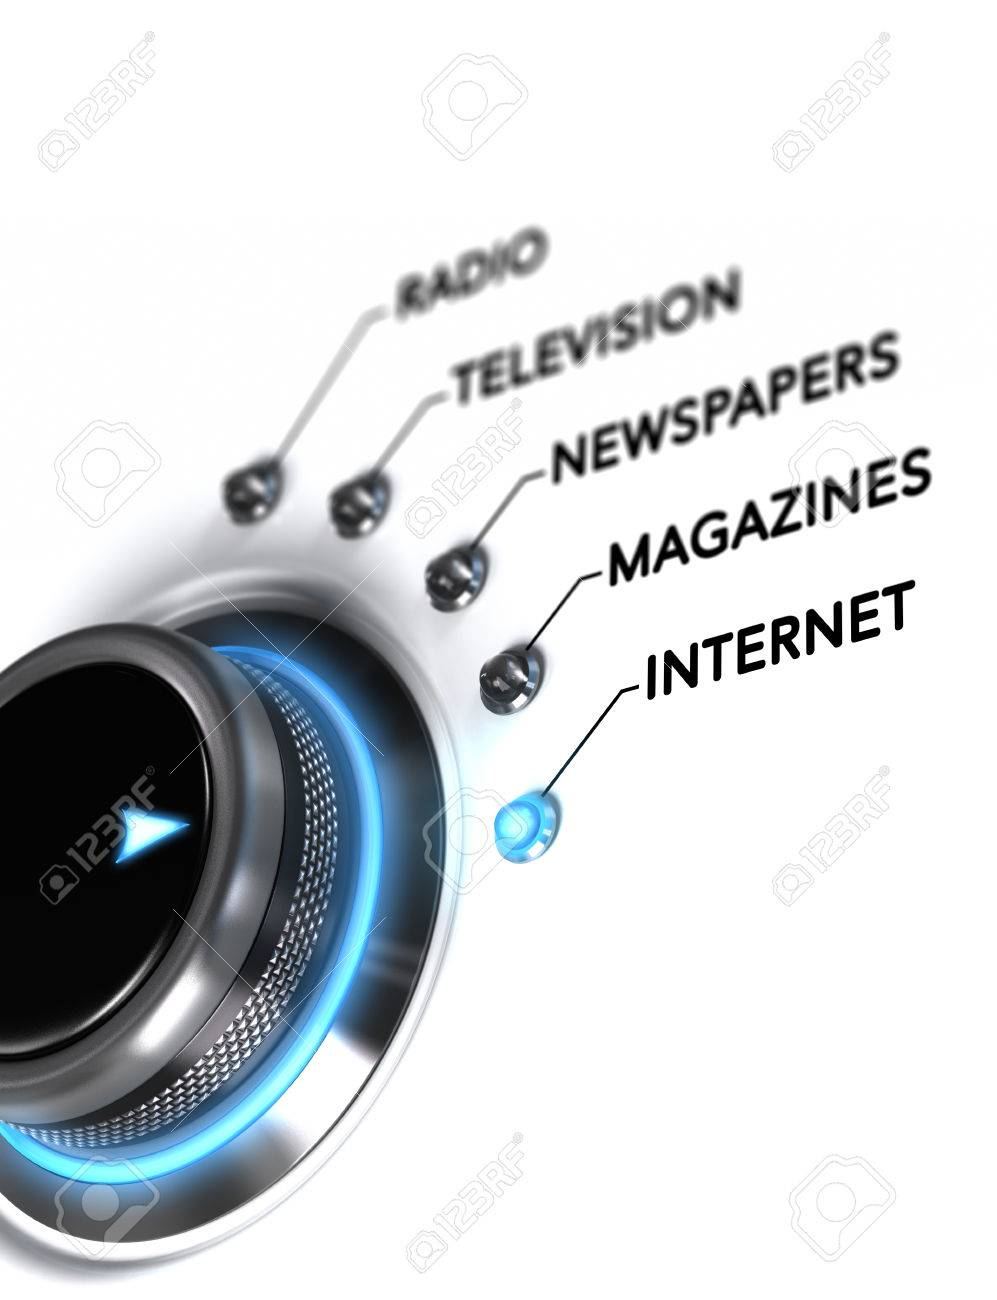 Switch button positioned on the word internet, white background and blue light. Conceptual image for illustration of media planning and digital communication. Stock Illustration - 44636394